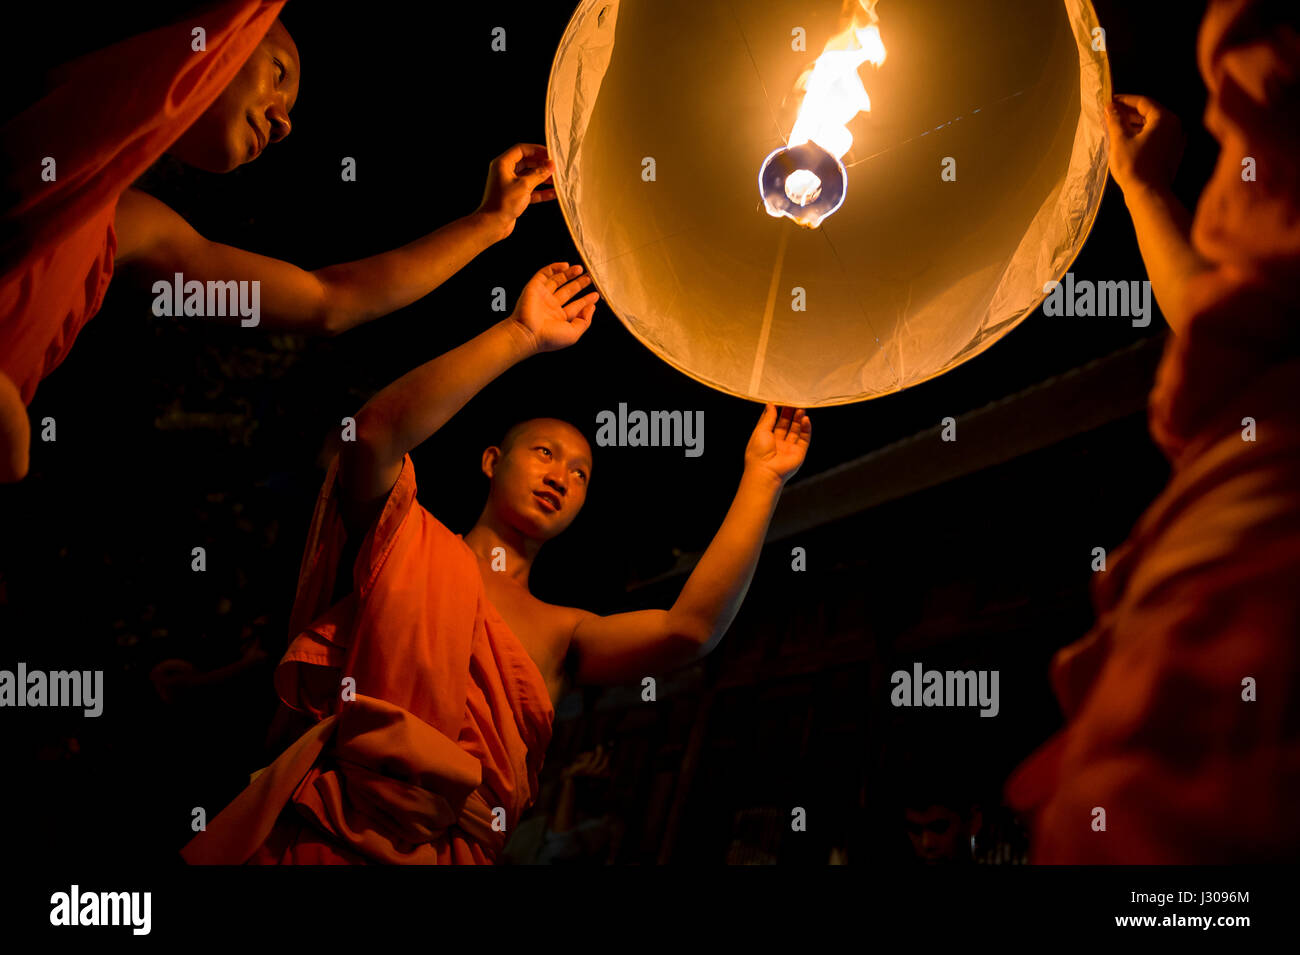 CHIANG MAI, THAILAND - NOVEMBER 7, 2014: Young Buddhist monks in orange robes launch sky lanterns at the annual - Stock Image